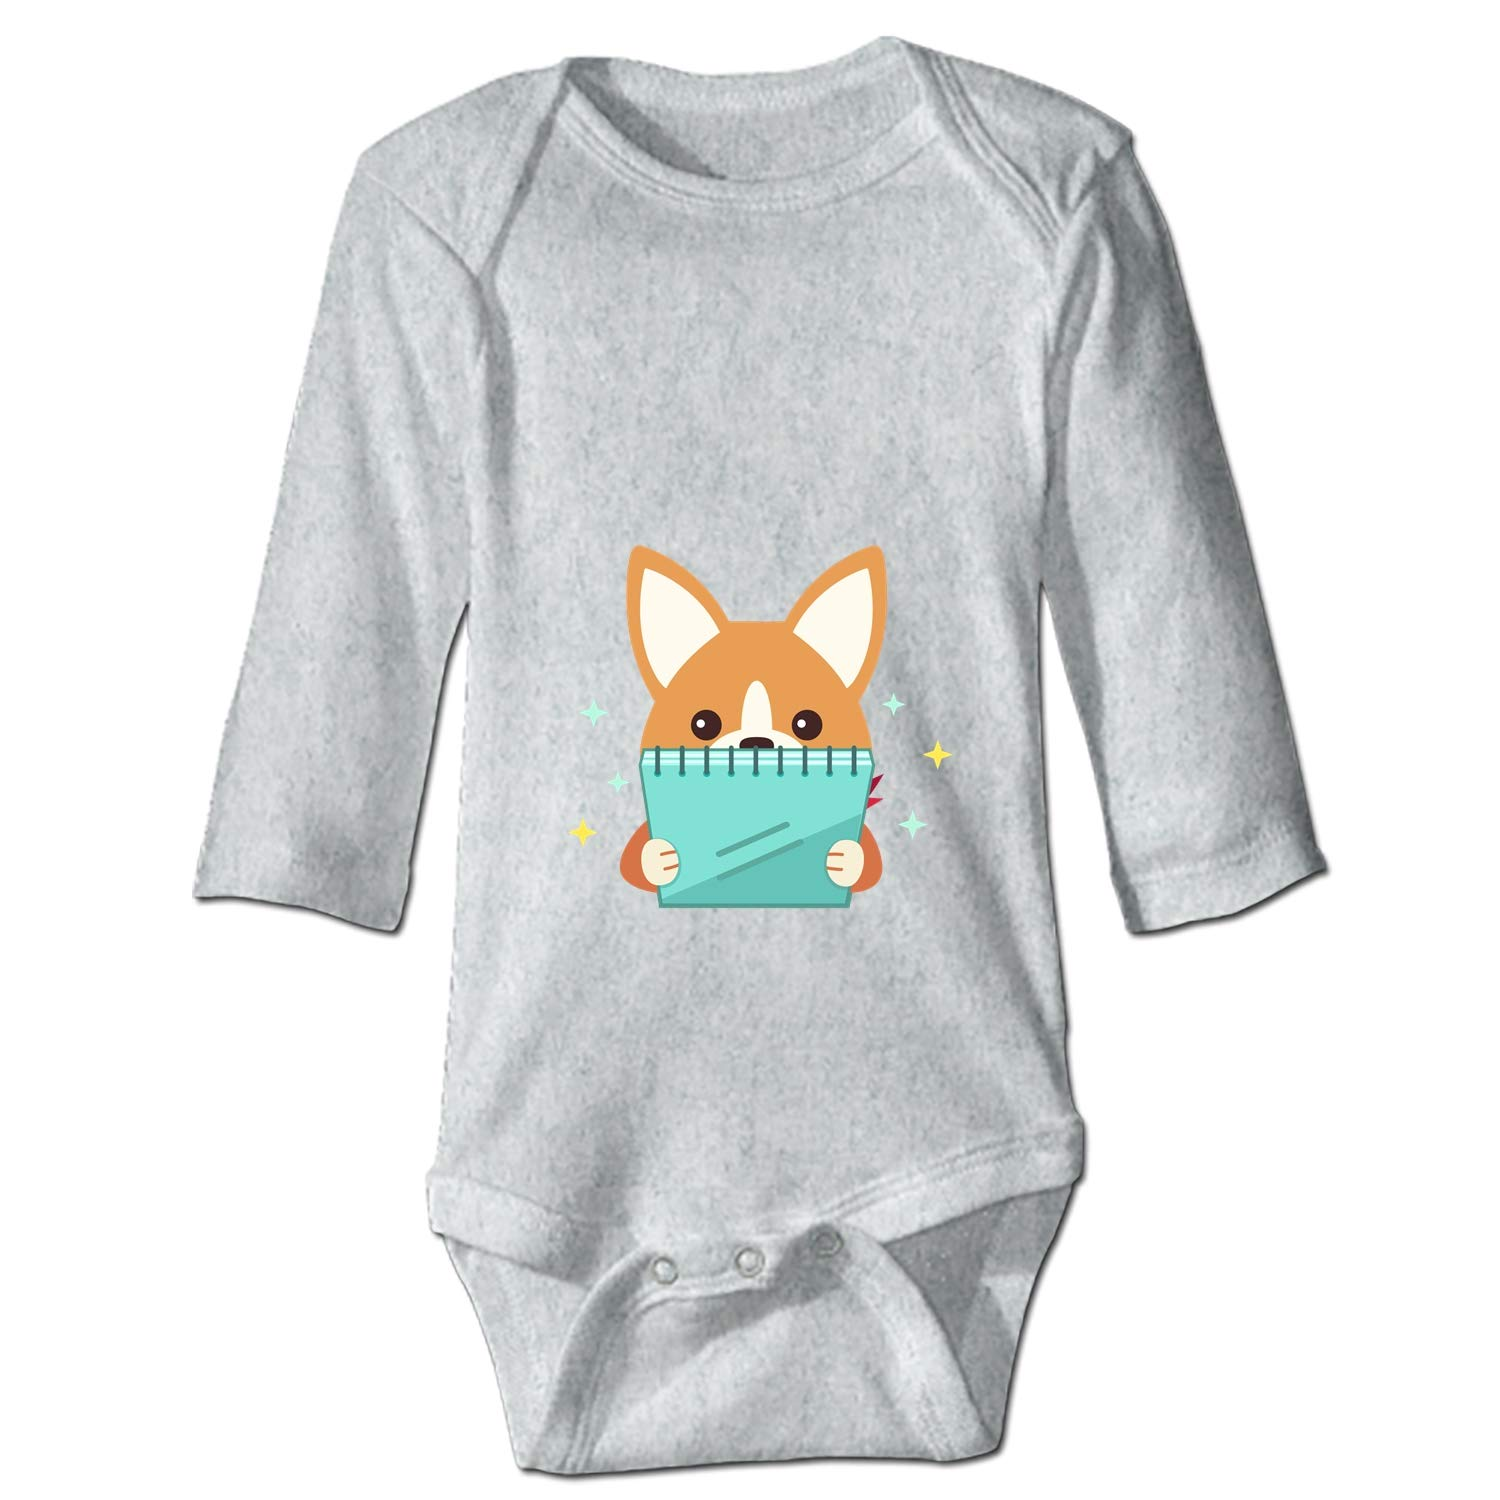 XASFF Baby Cotton Bodysuits French Bulldog Long-Sleeve One-Piece Suit 6M 24M